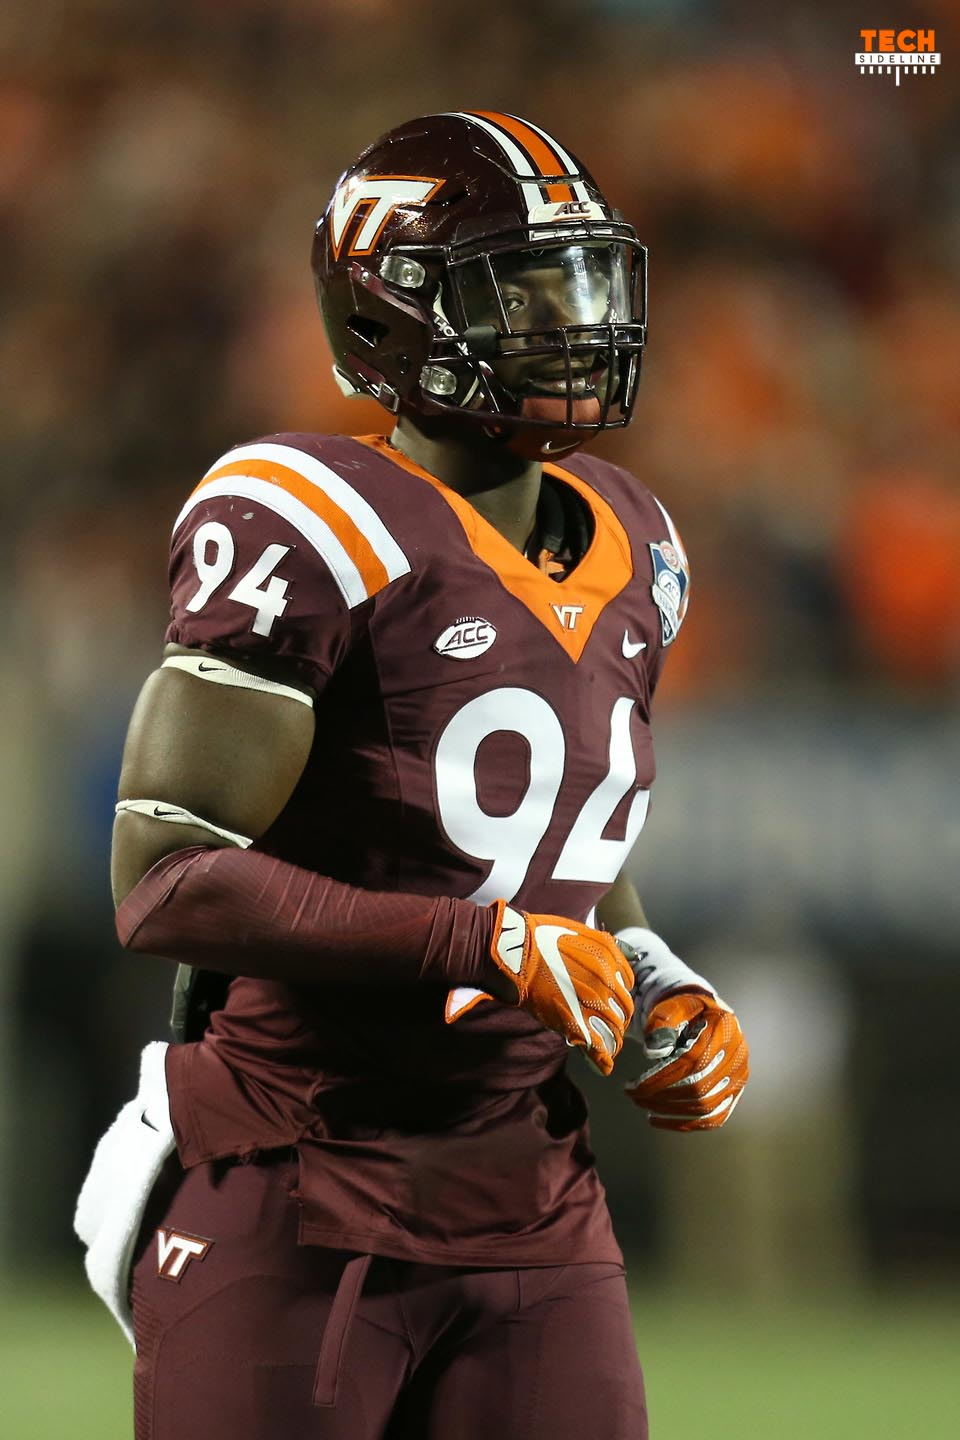 Trevon Hill Virginia Tech football